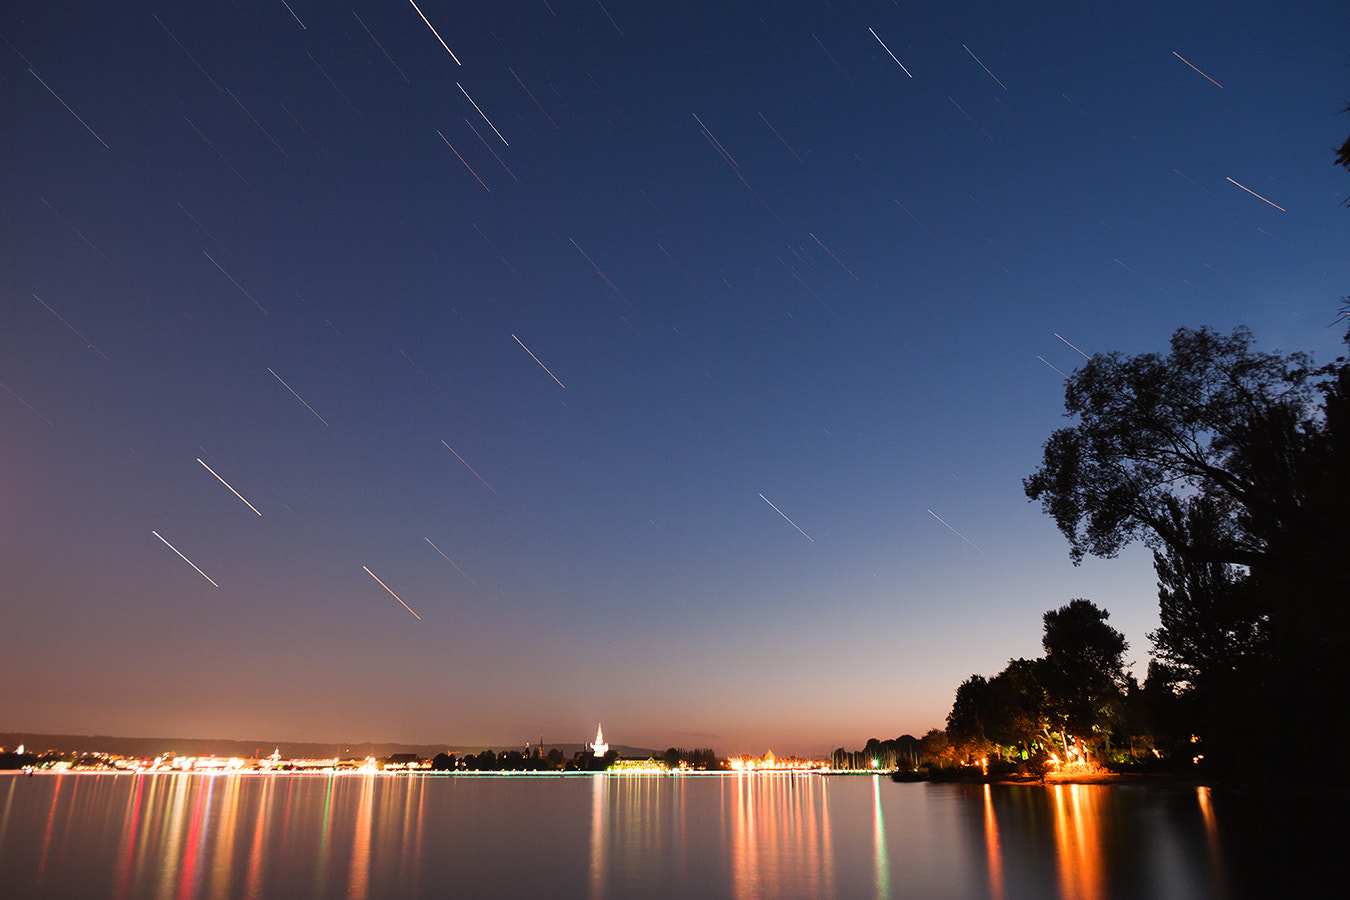 Photograph Stars over Konstanz by David Witte on 500px